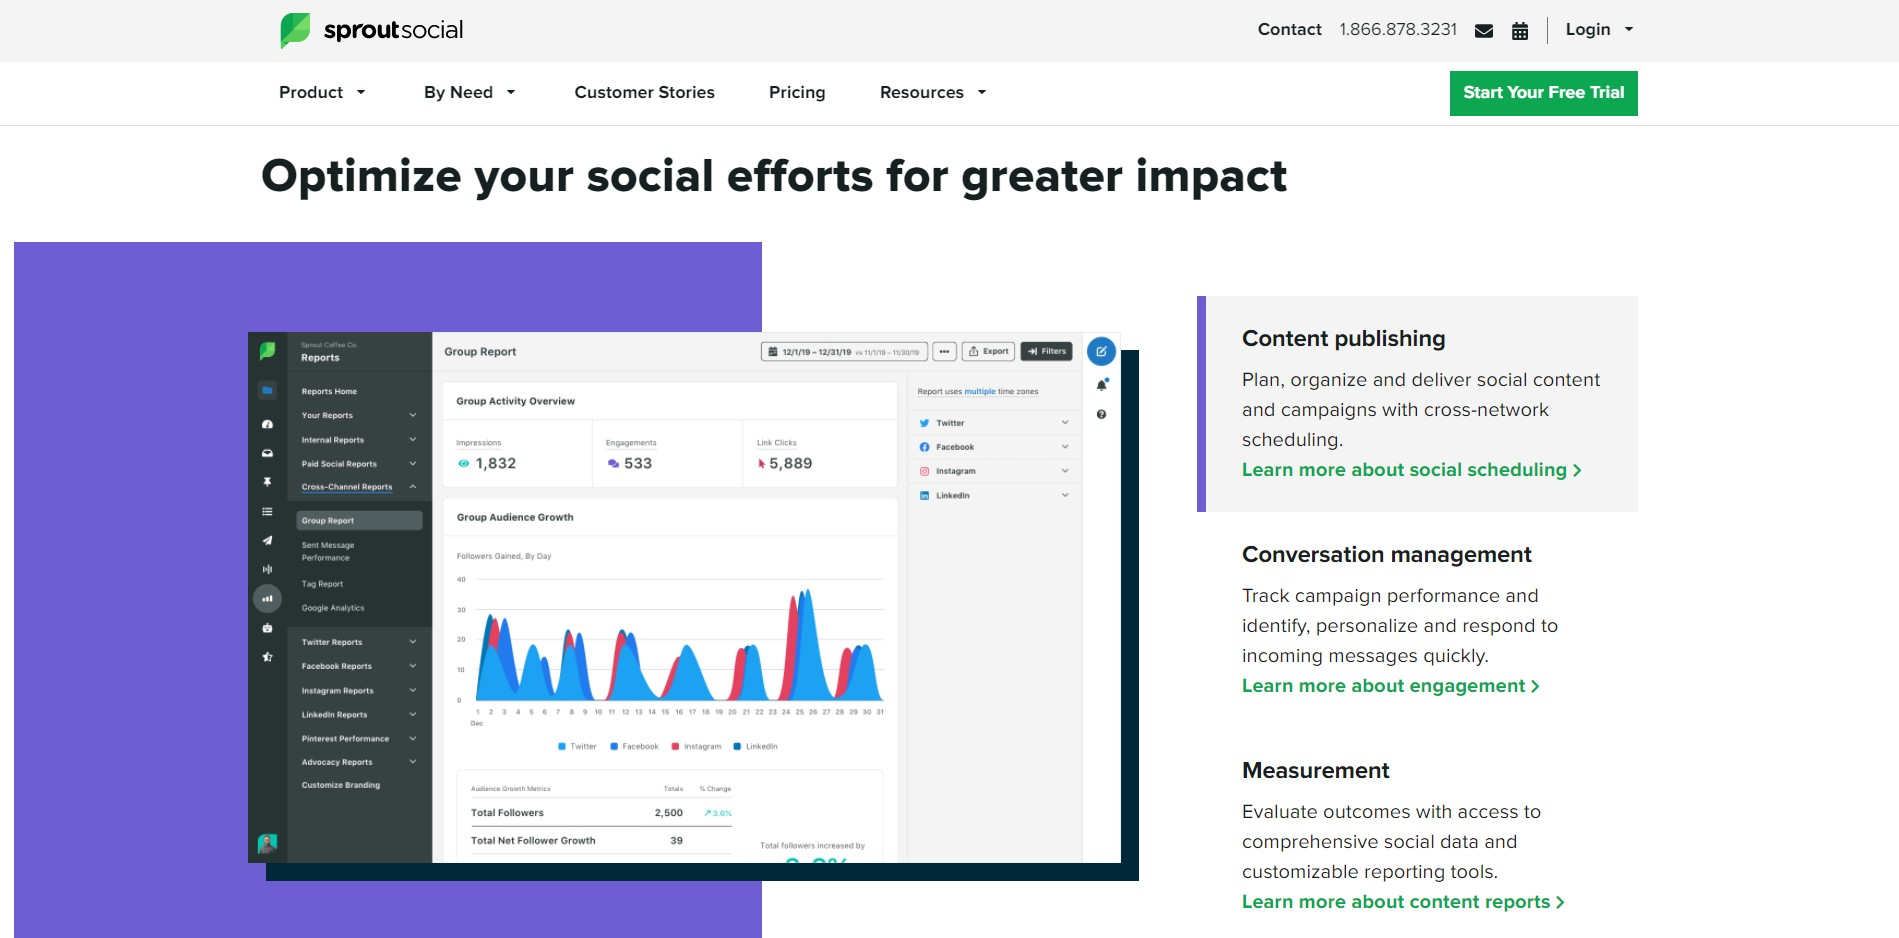 Social Media Management Tools for Various Platforms Sprout Social 2